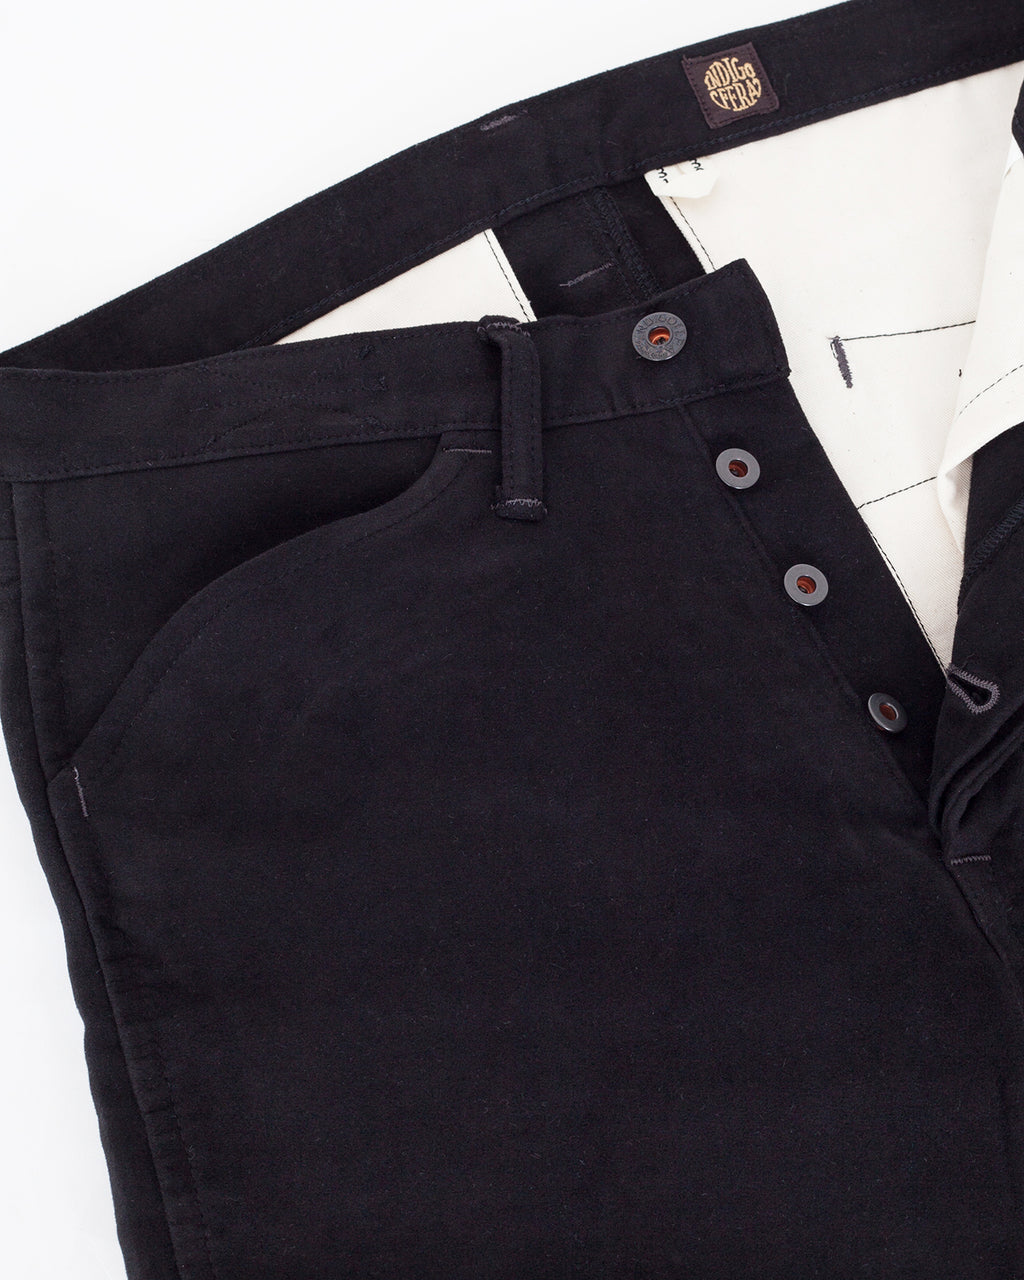 Indigofera x Israel Nash, Suffolk Pants, Black Moleskin